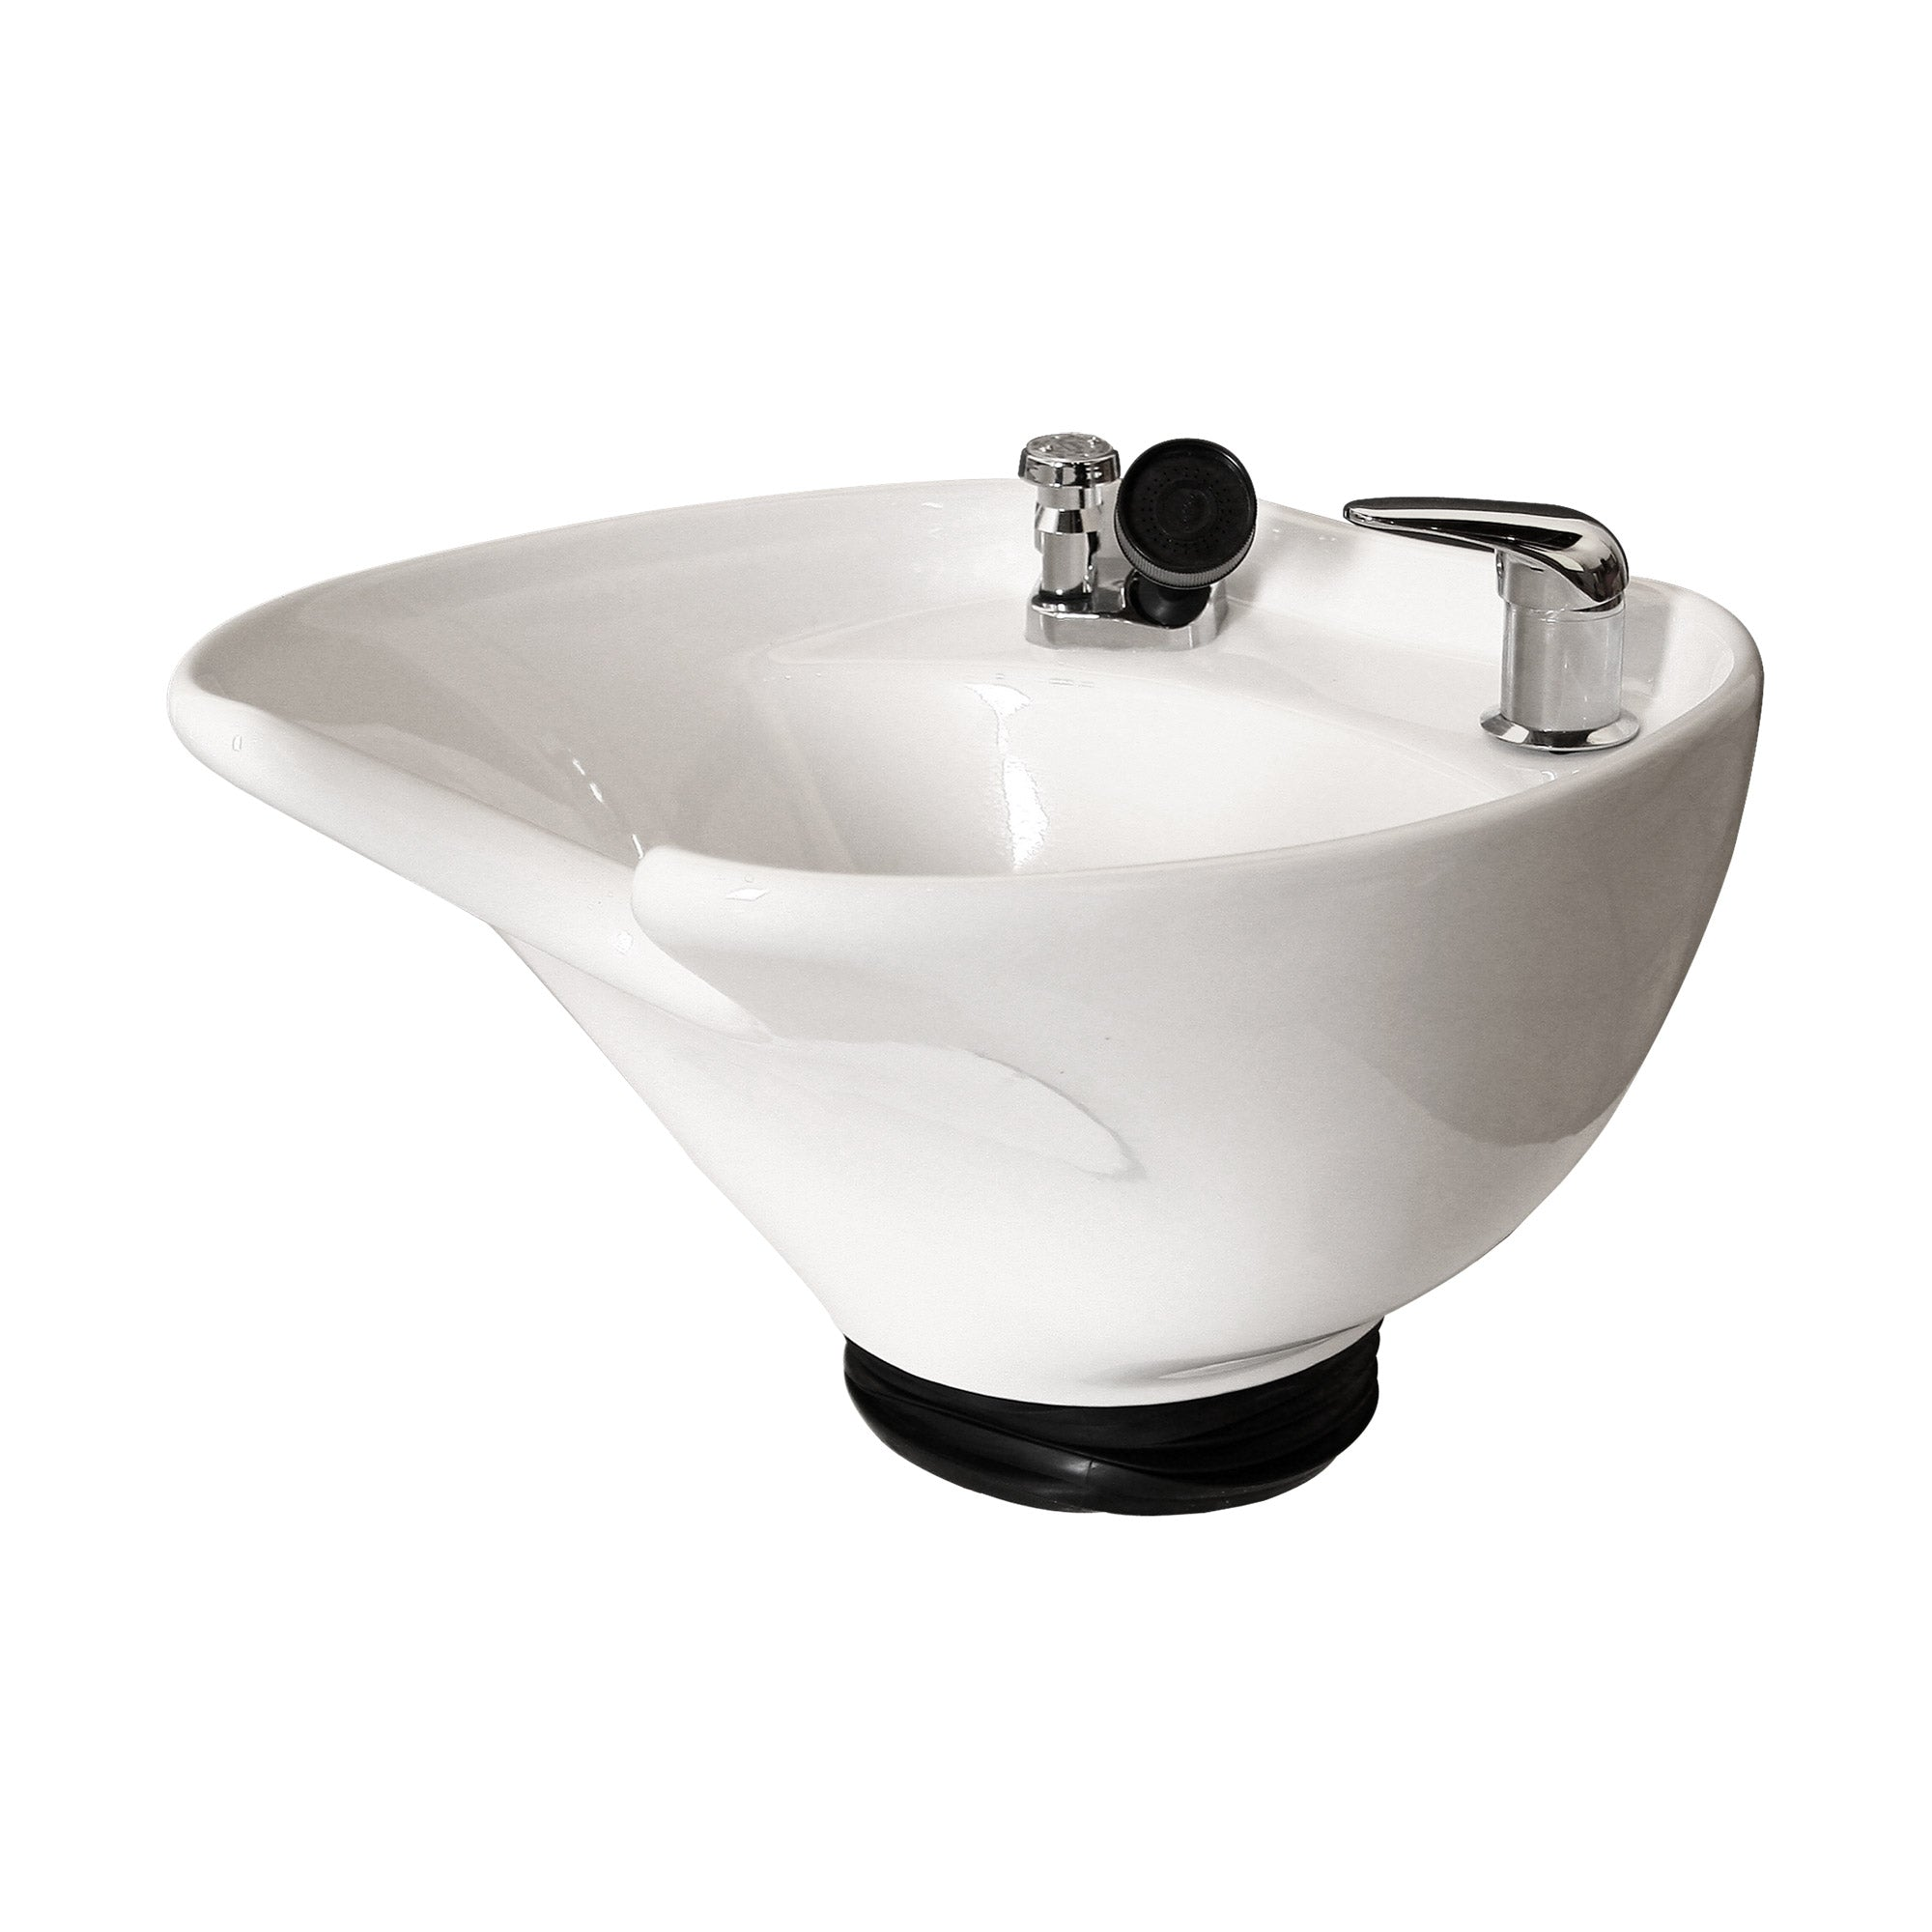 ERGO Porcelain Tilting Shampoo Bowl - Collins